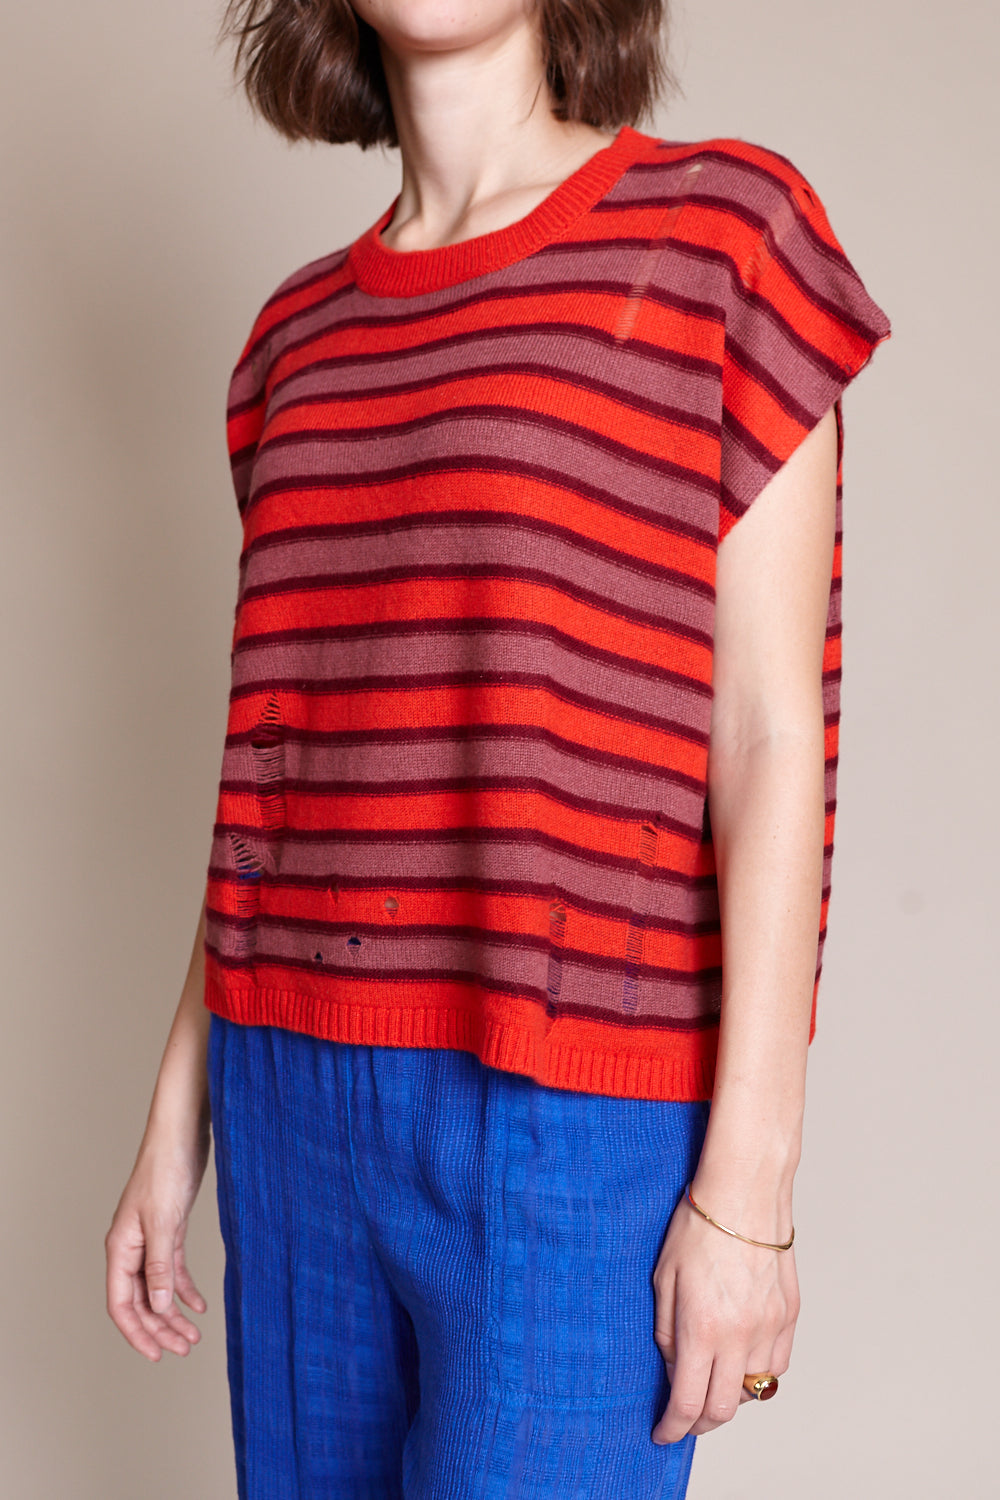 Square Sweater Top in Tomato Stripe